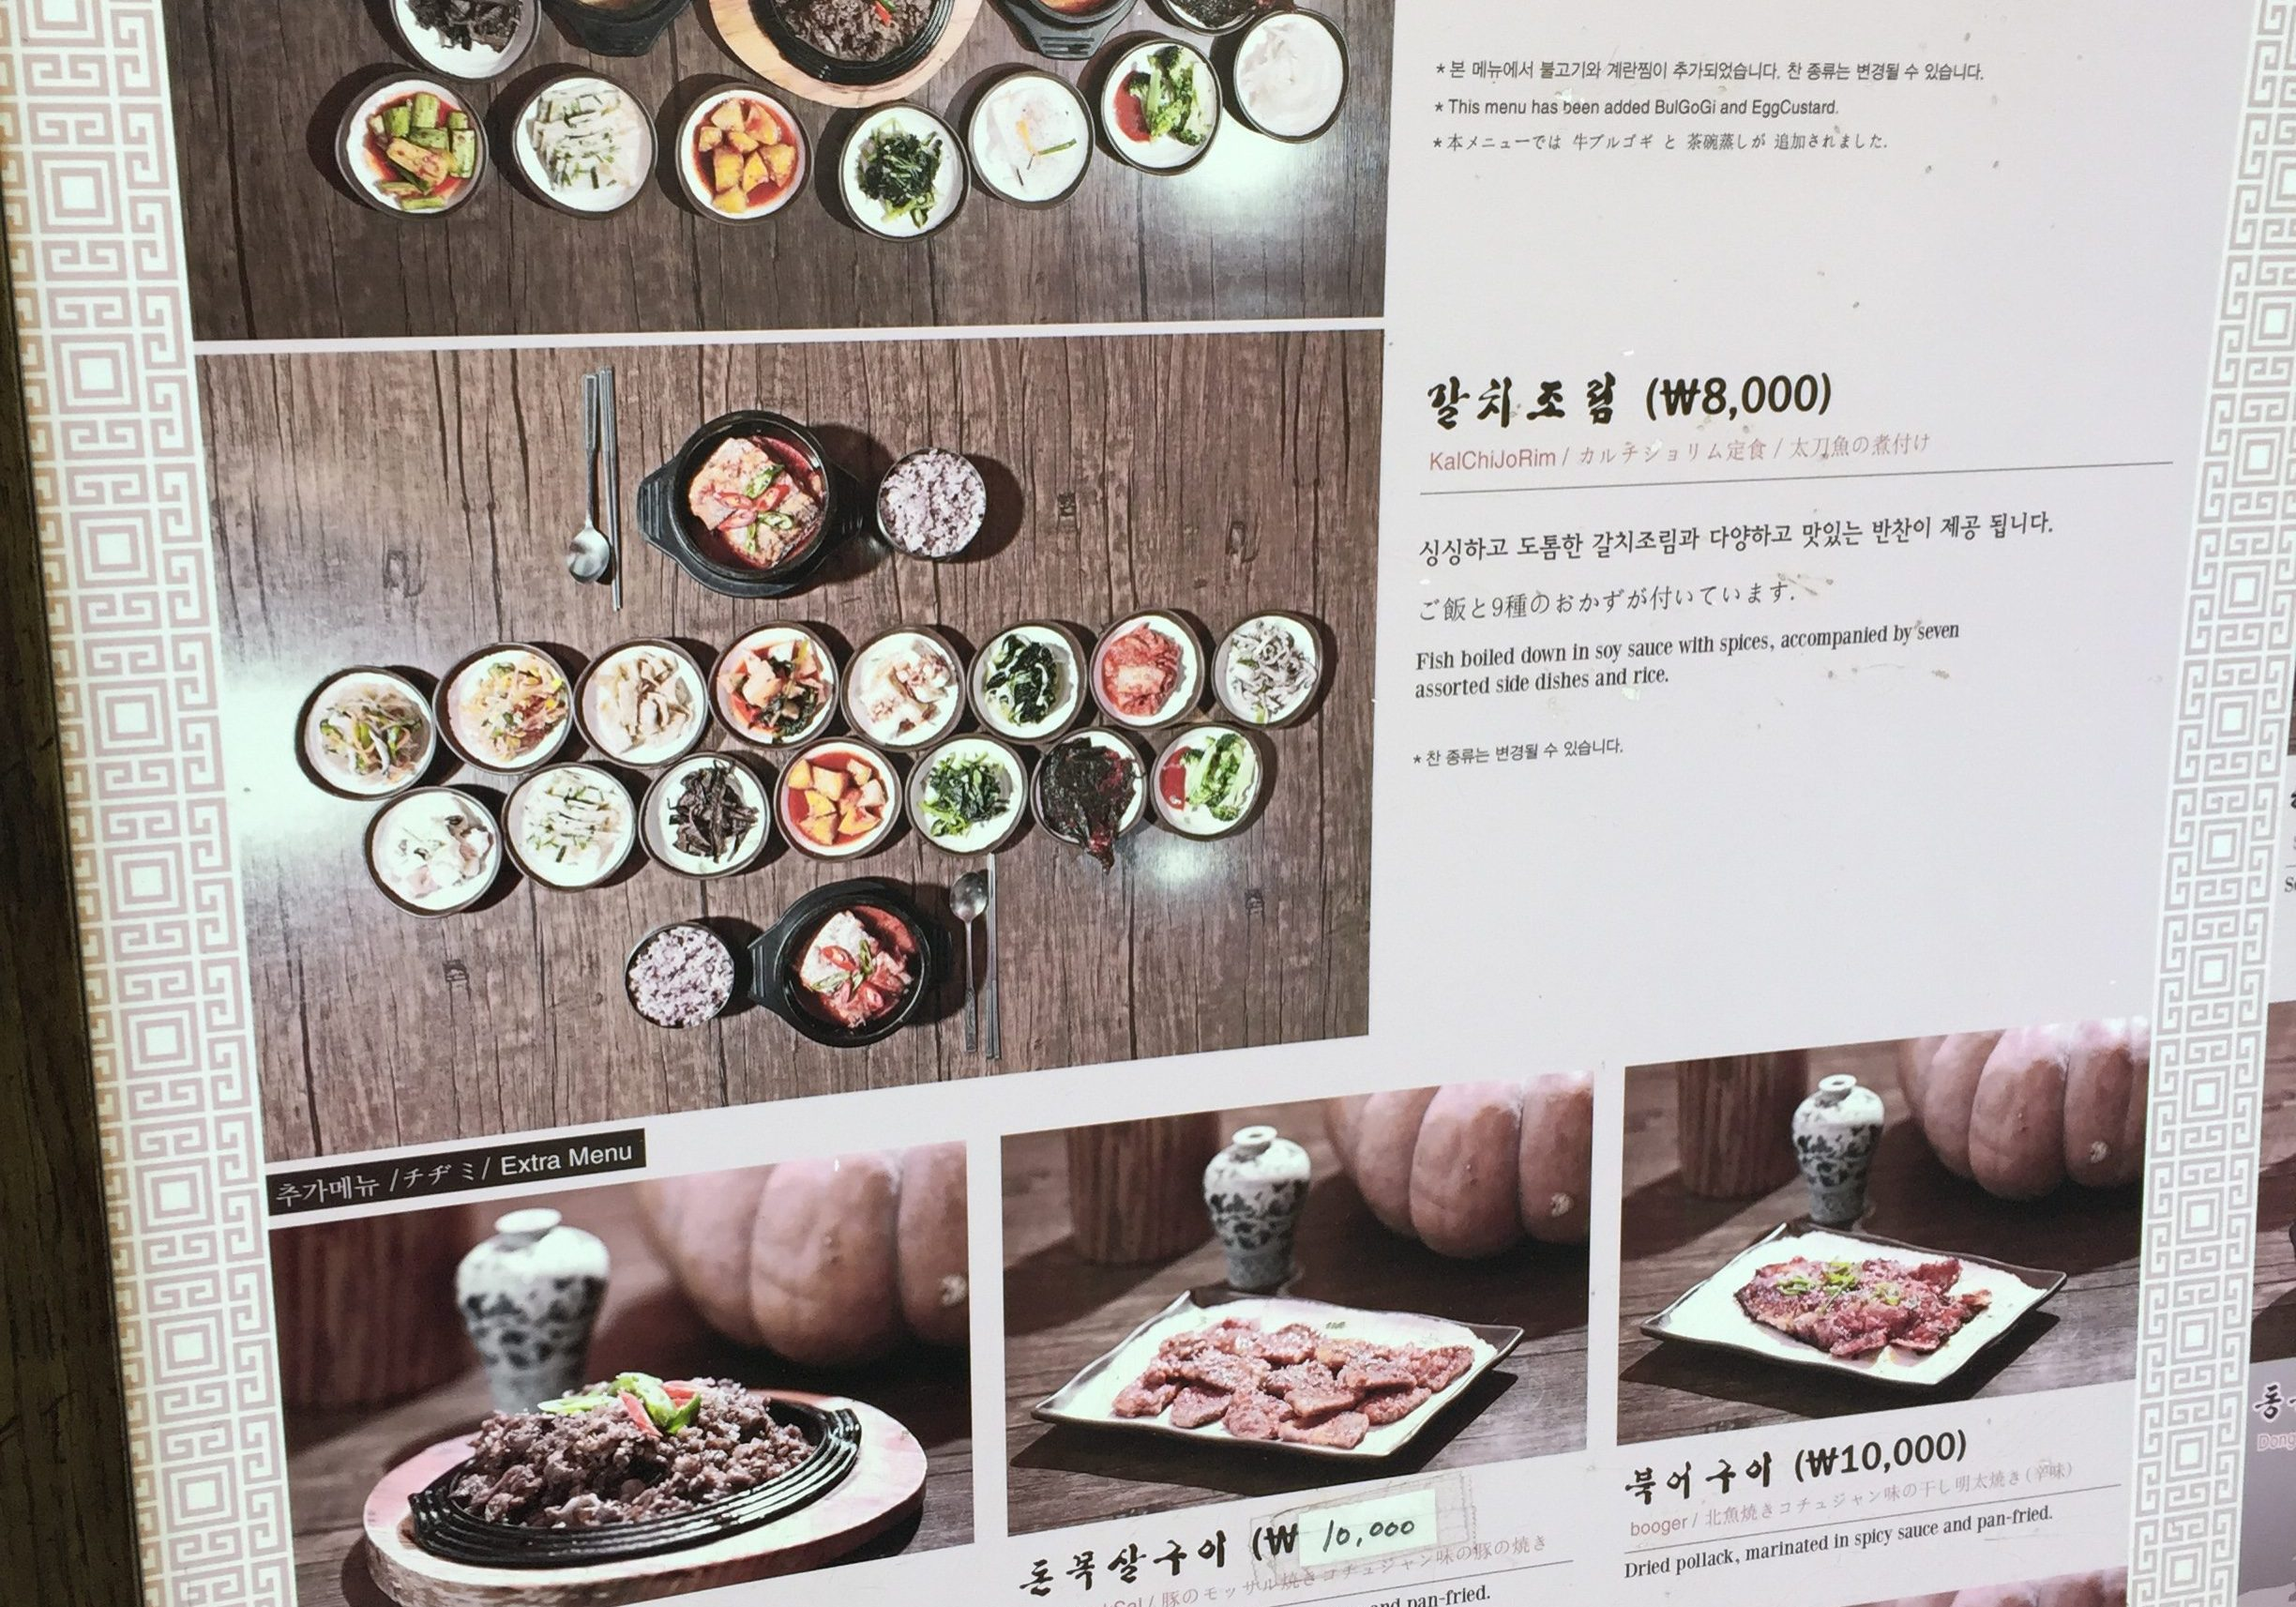 Look! Traditional Korean Meal for only 7,000 won!